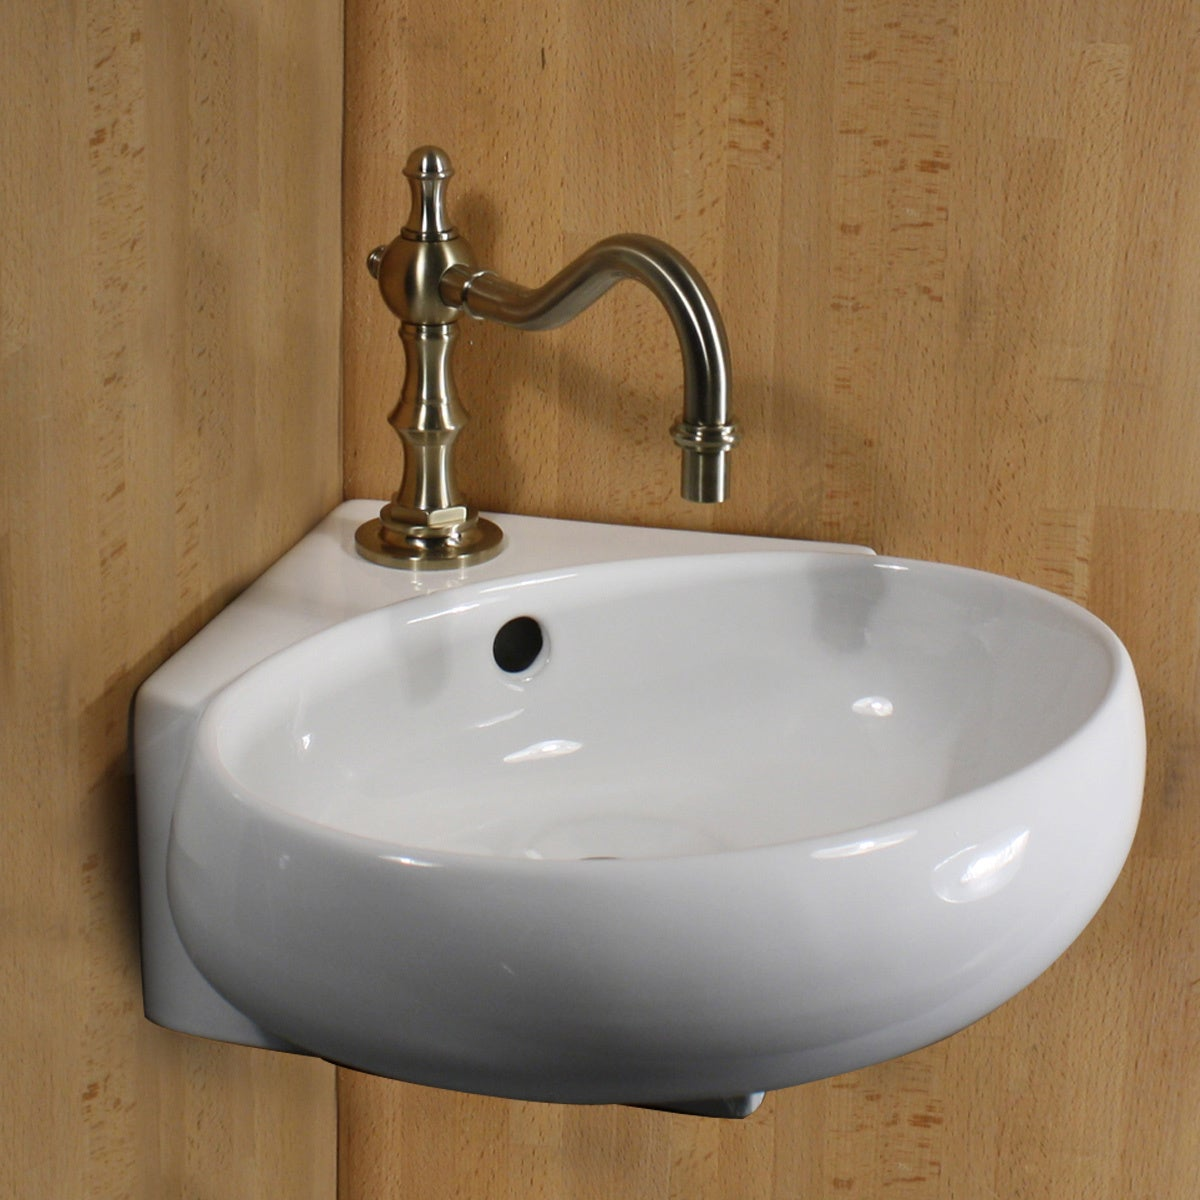 Vitreous China 13 Inch Oval Corner Wallmount Vessel Vanity Sink Overstock Shopping Great